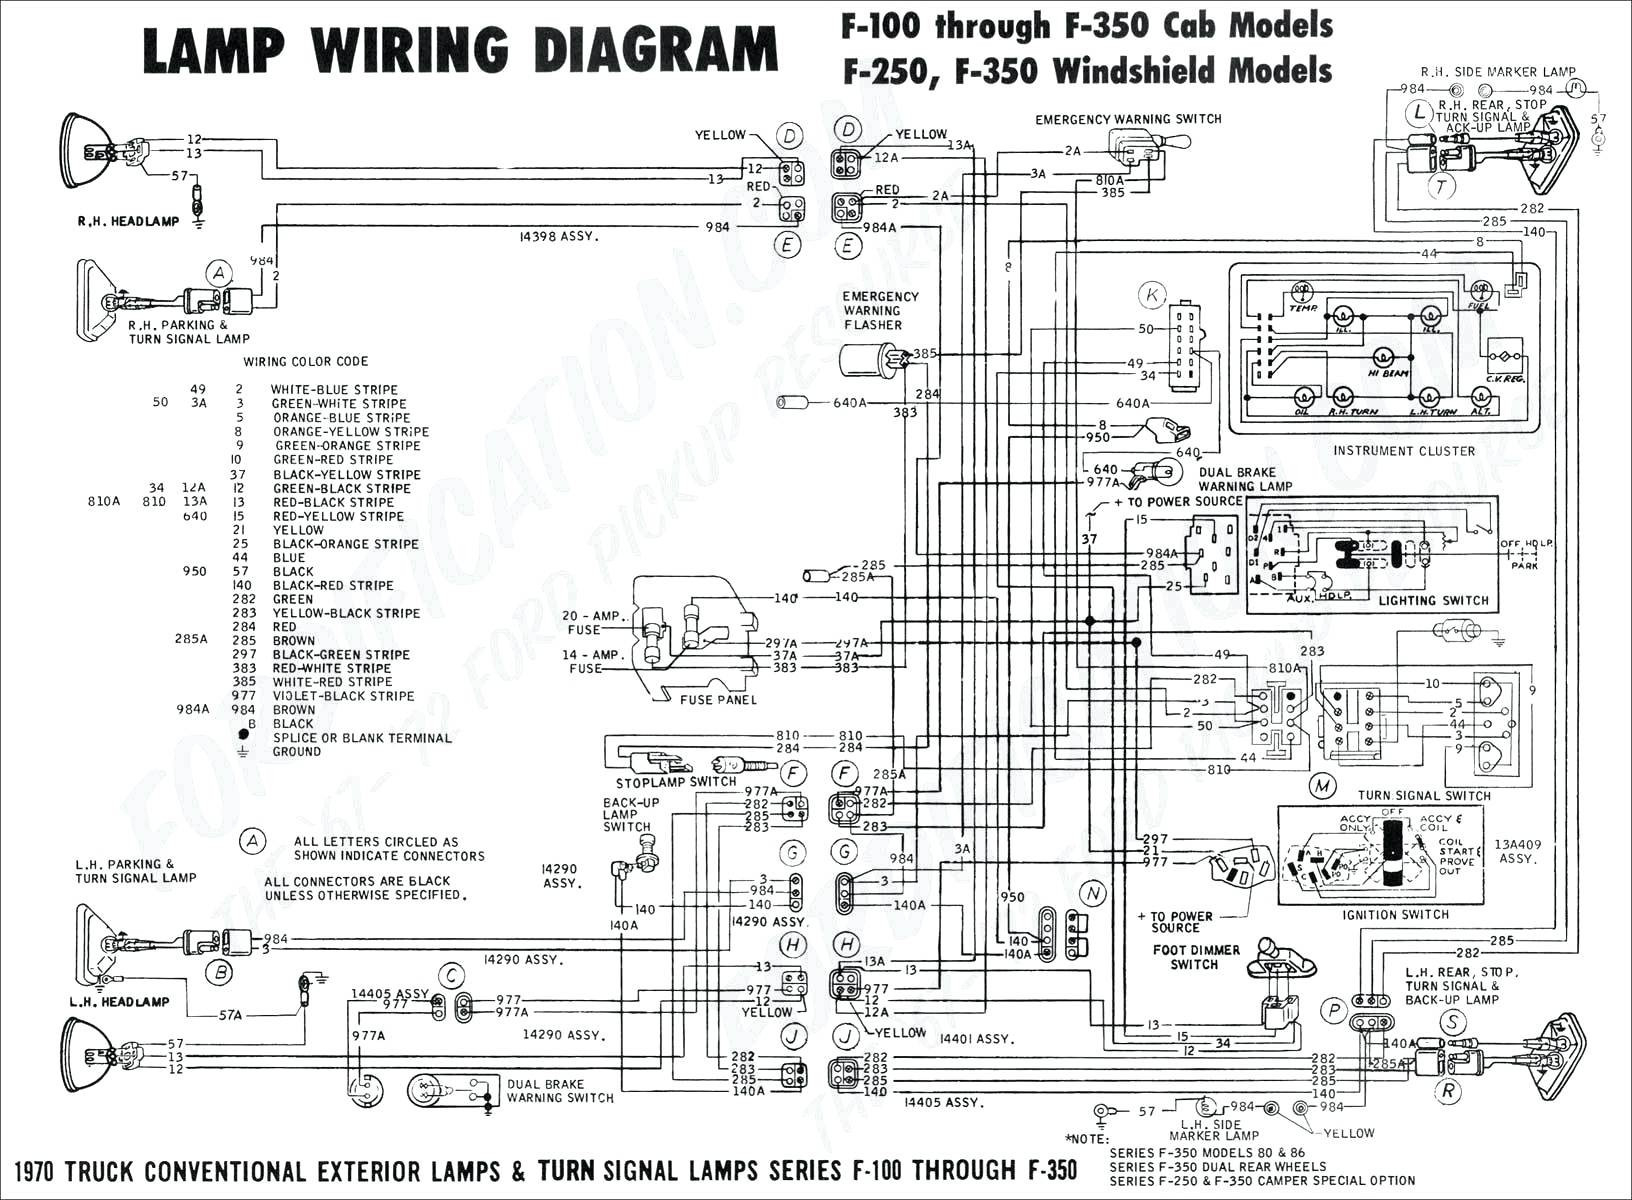 chevy silverado trailer wiring diagram Download-2005 Chevy Silverado Trailer Wiring Diagram Ford Resize Gmc Ideas With F250 5 16-o